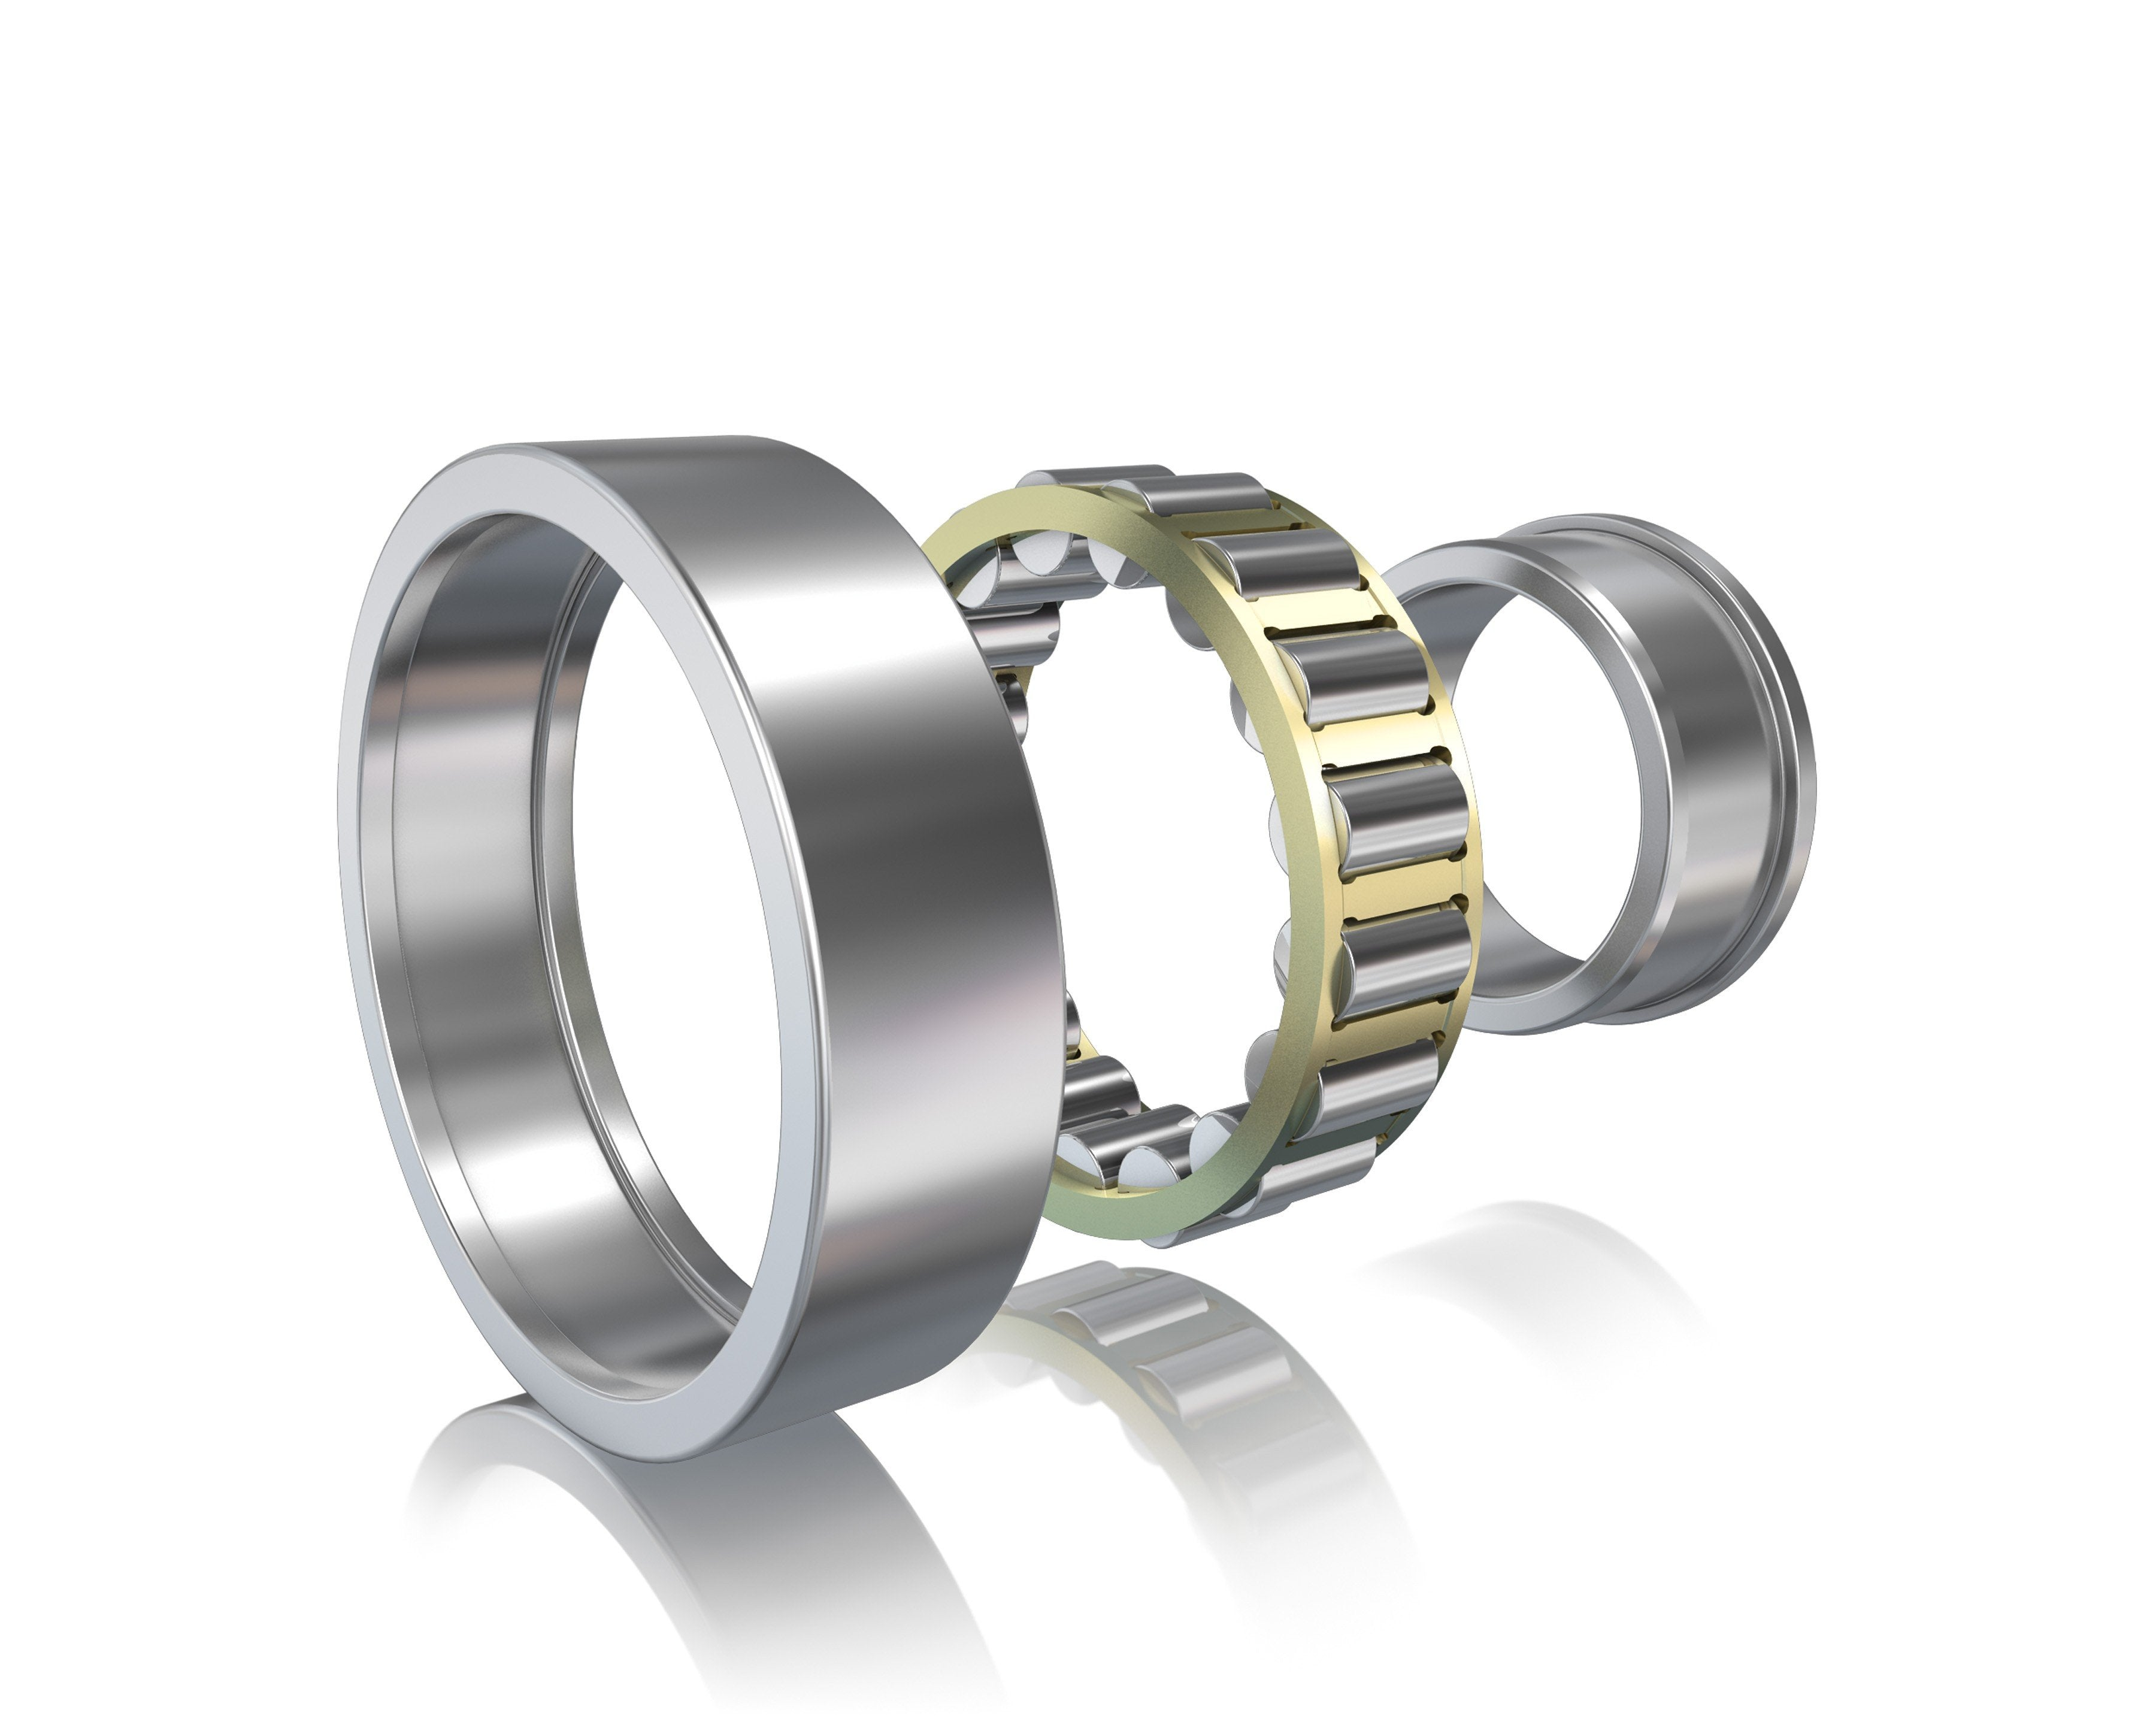 NJ313-ECP-C3-SKF, Bearings, Cylindrical roller bearings